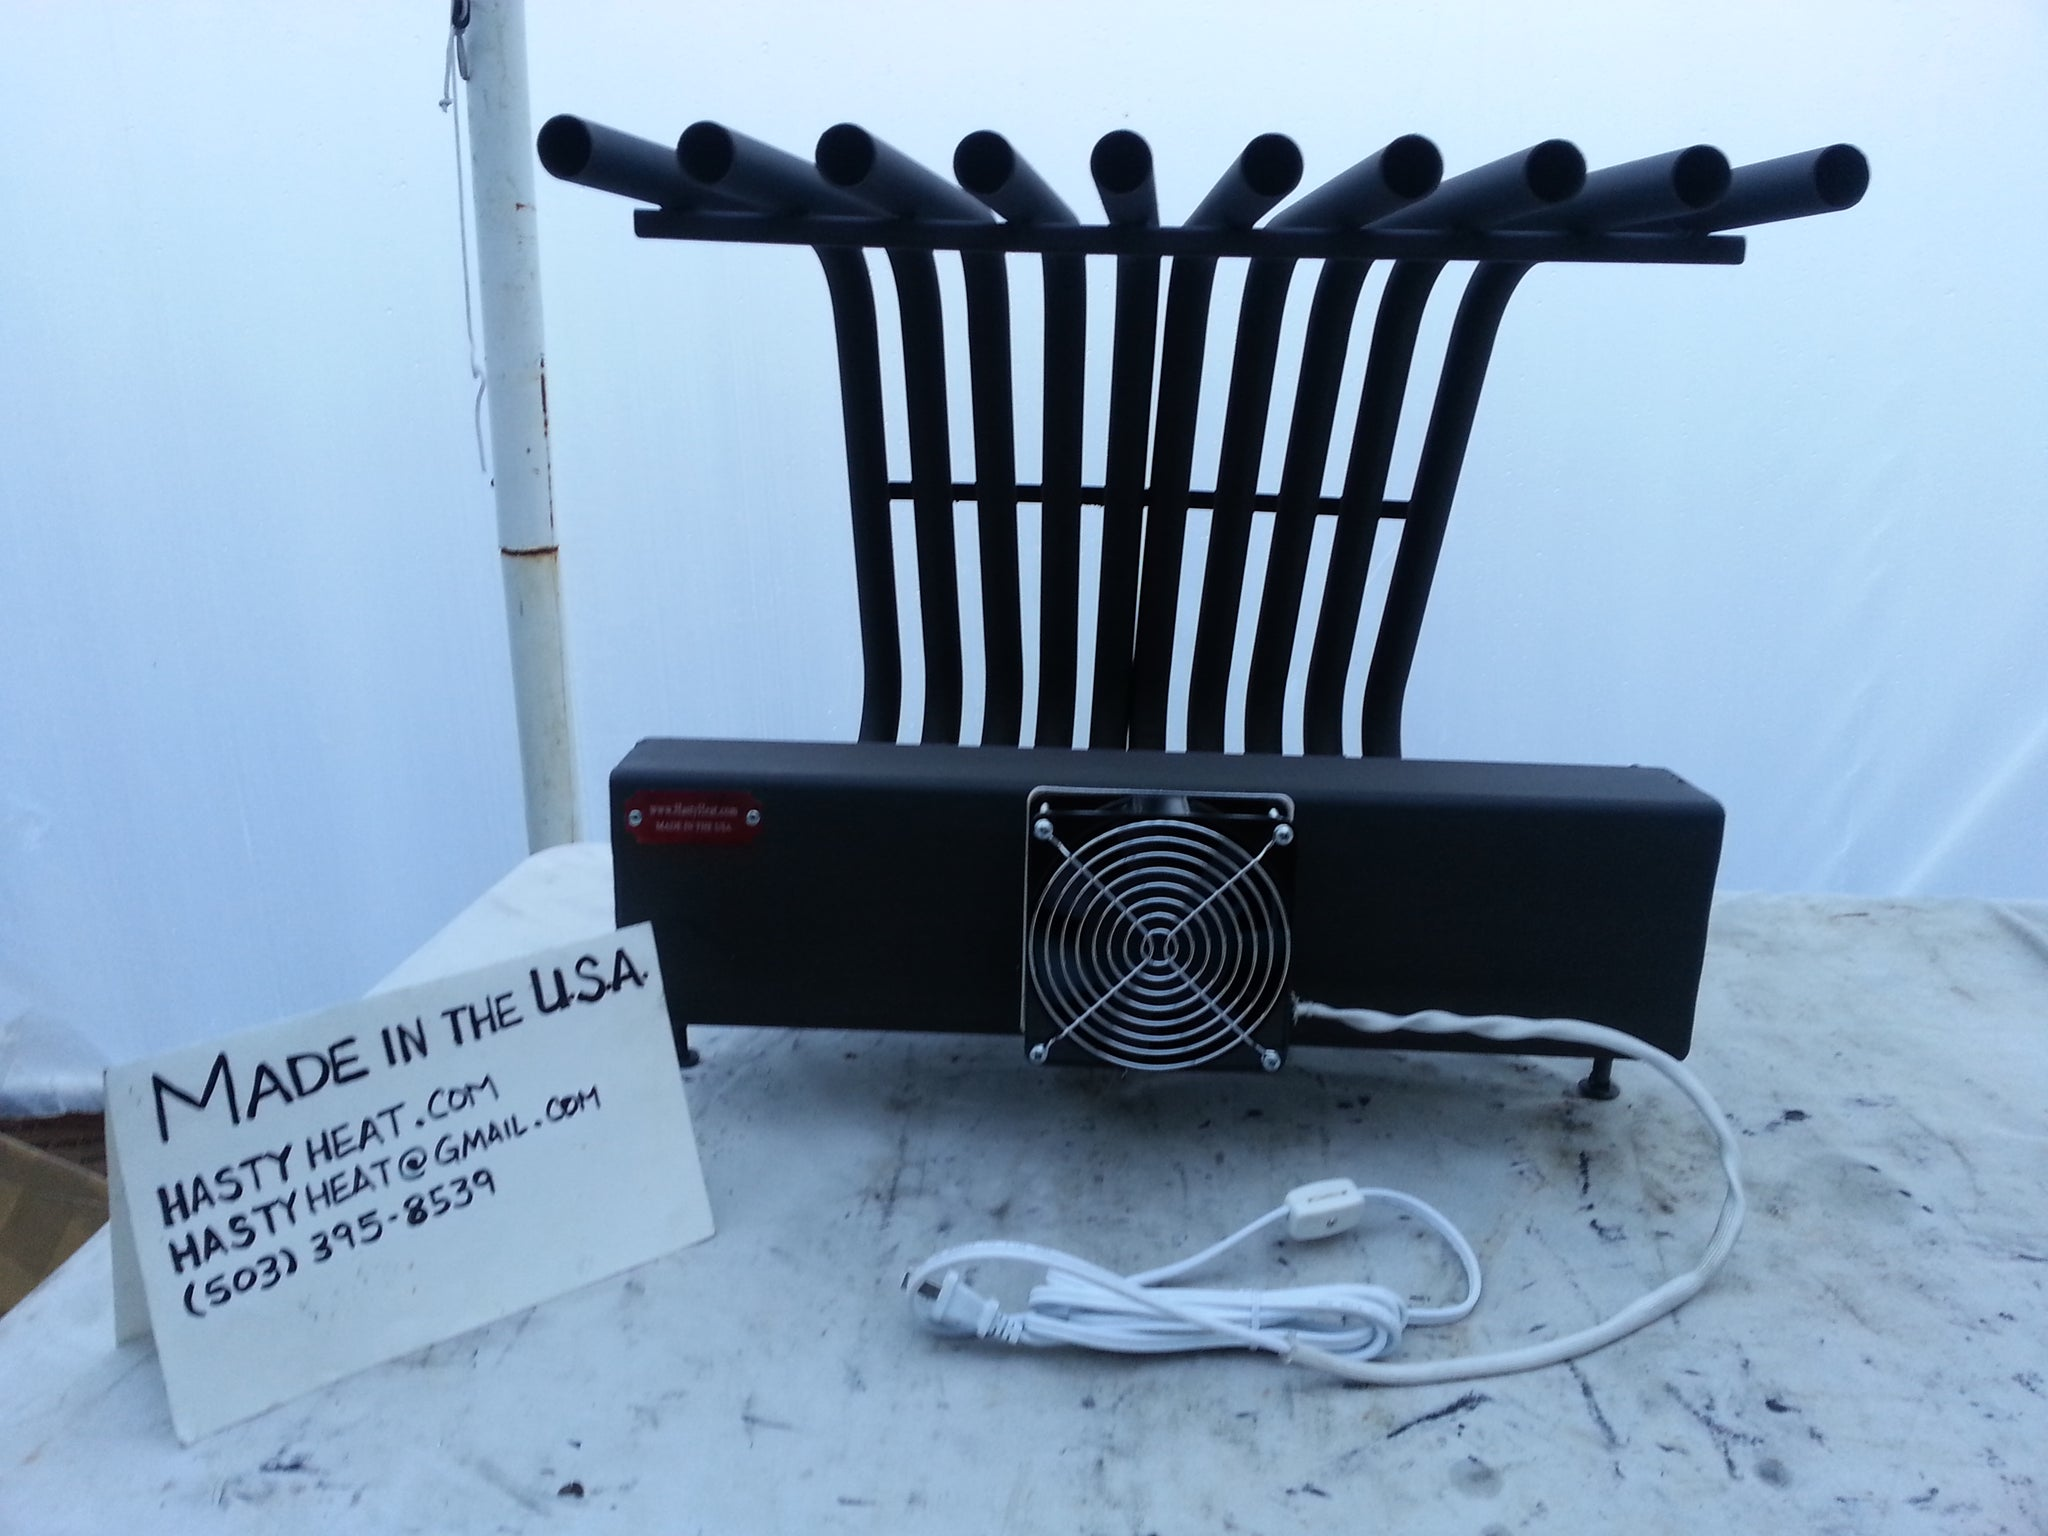 20TGR Tapered Grate Heater, Fireplace Heat Exchanger Fireback Andiron Heatilator Rack Blower Hearth Furnace Electric Wood Gas Pellet Metal Brick